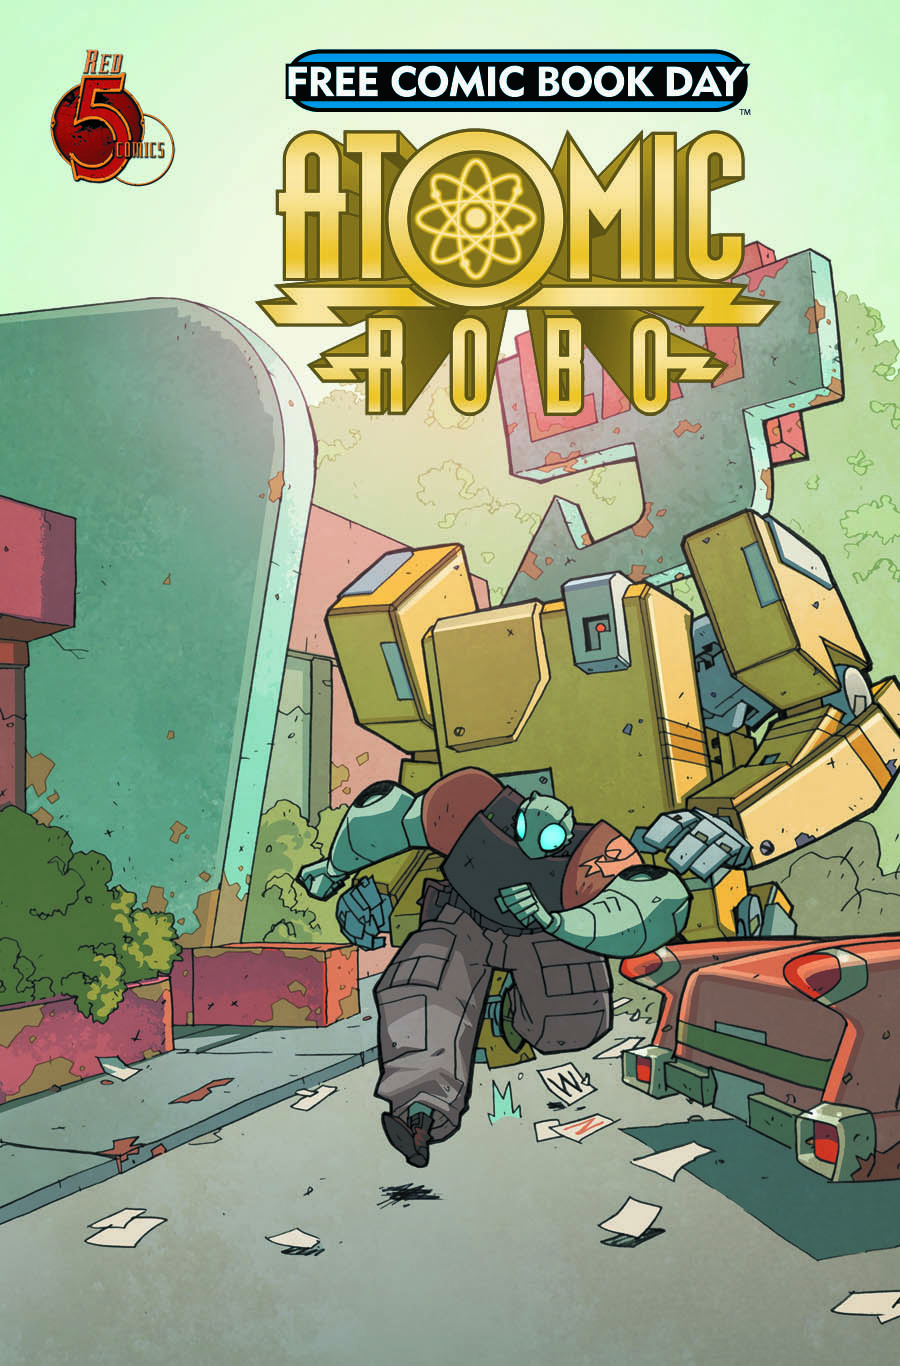 FCBD 2013 ATOMIC ROBO & FRIENDS